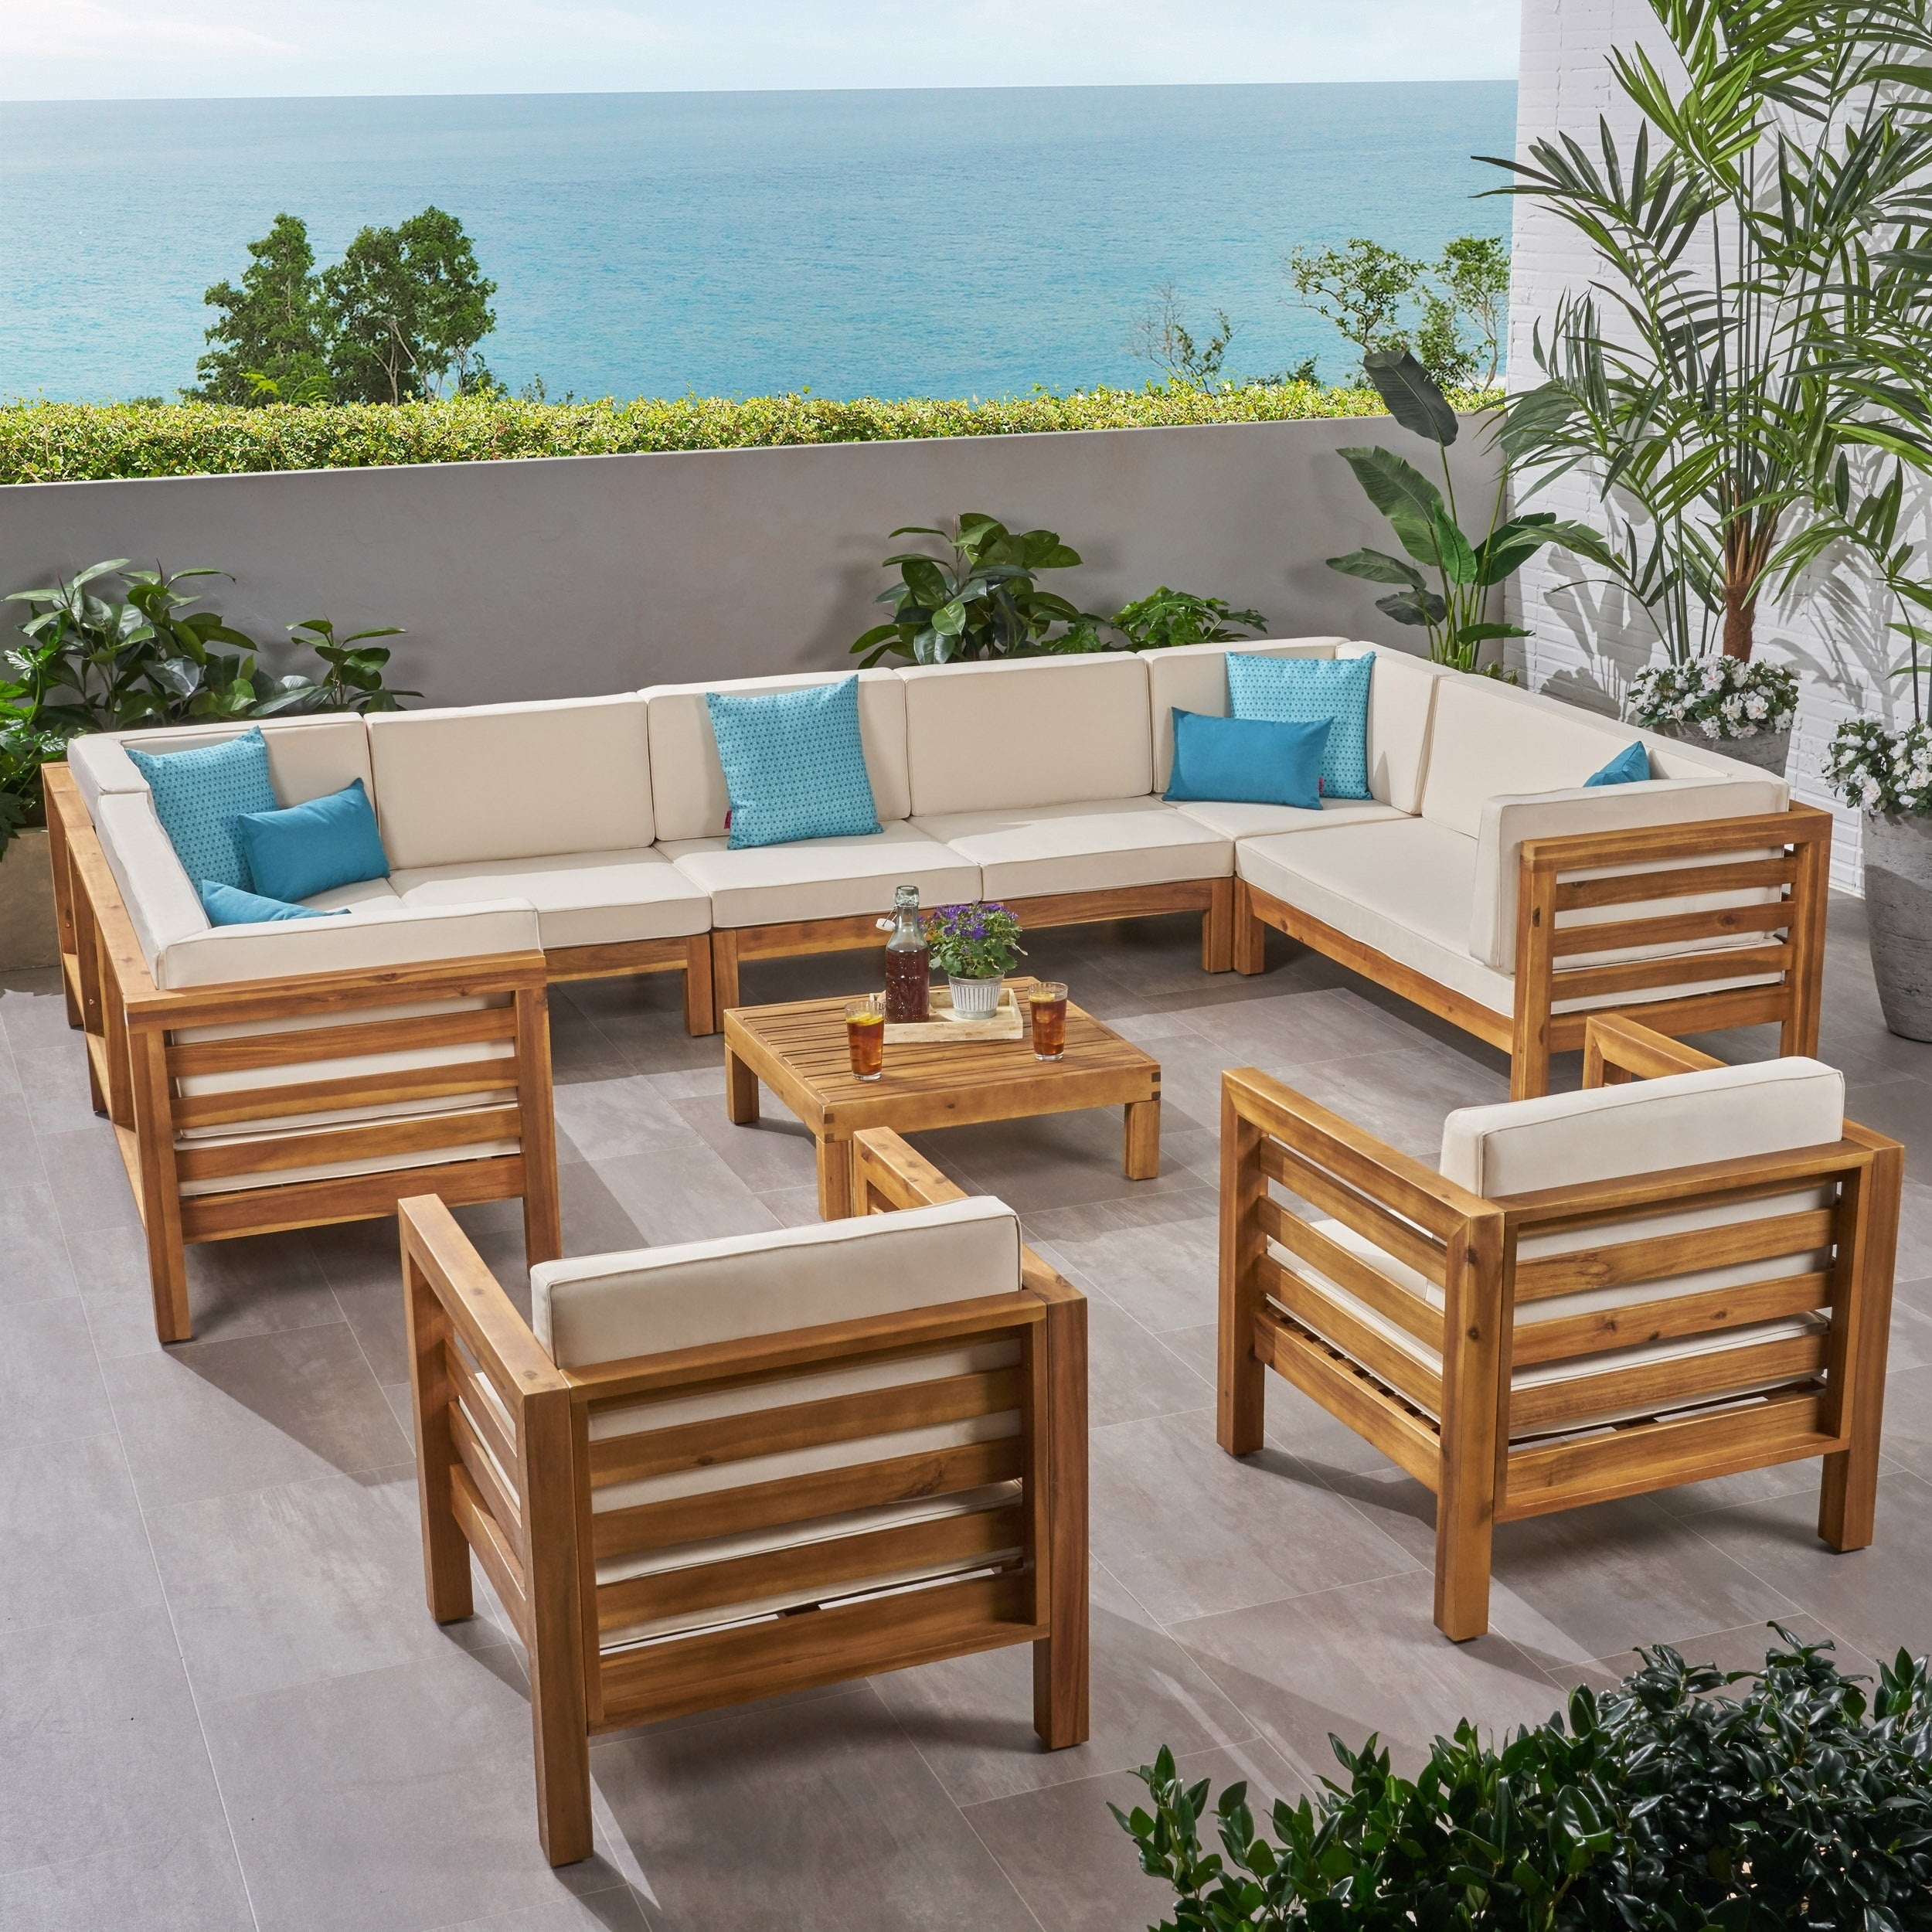 Oana Outdoor 11 Seater Acacia Wood Sectional Sofa And Club Chair Set By Christopher Knight Home Overstock 27785011